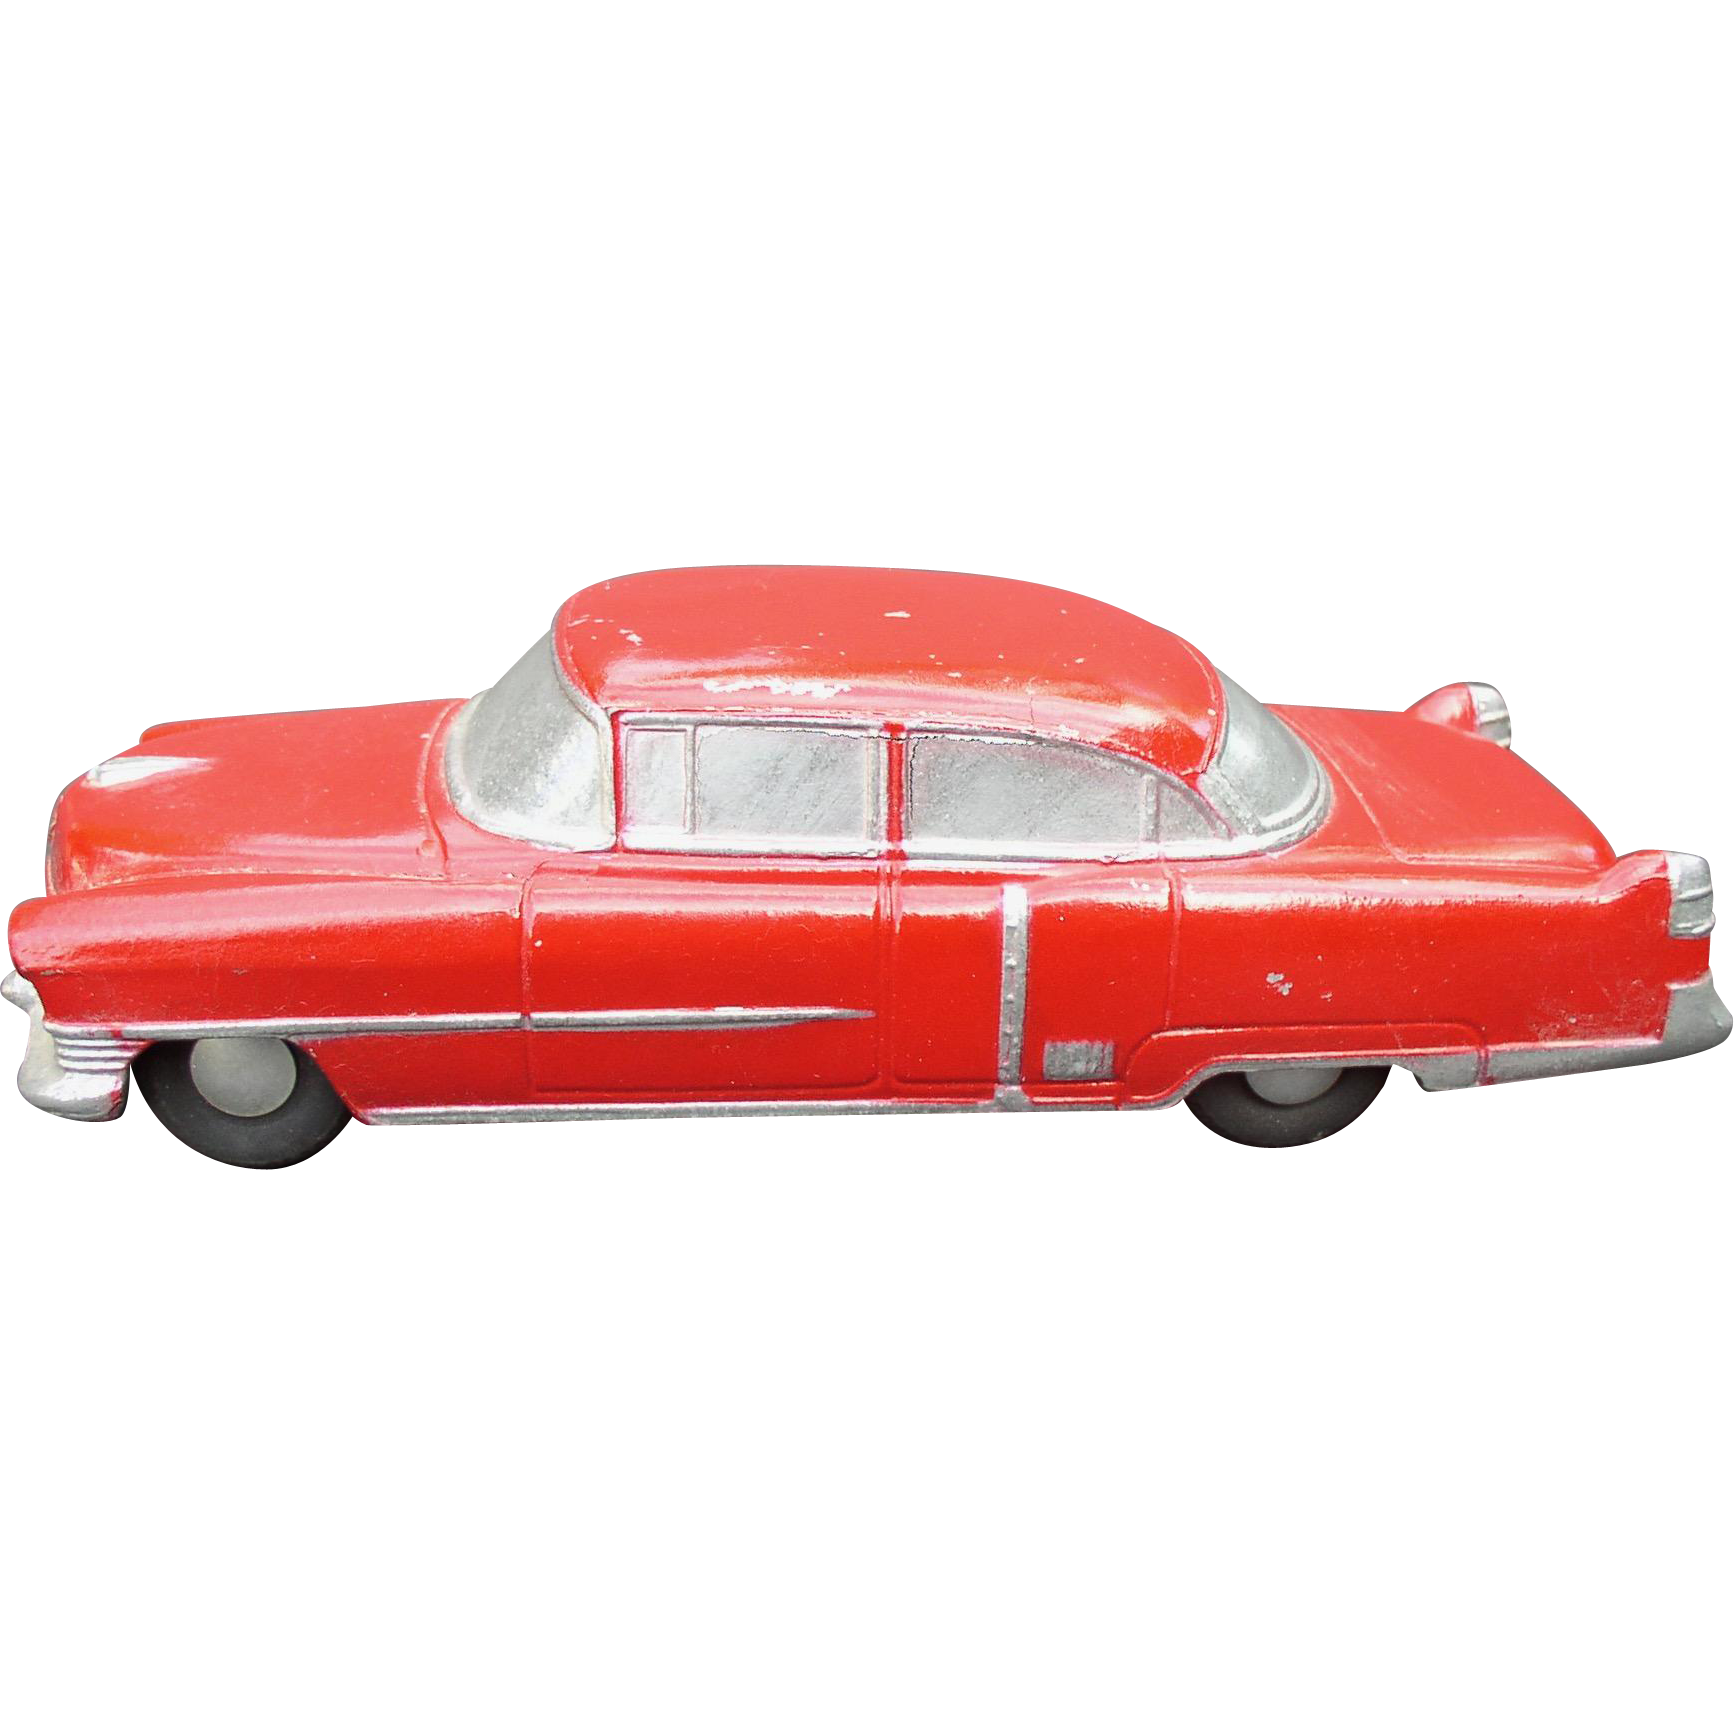 1954 Cadillac Fleetwood BANTHRICO Chicago ILL  Cast Steel Promo Car Bank